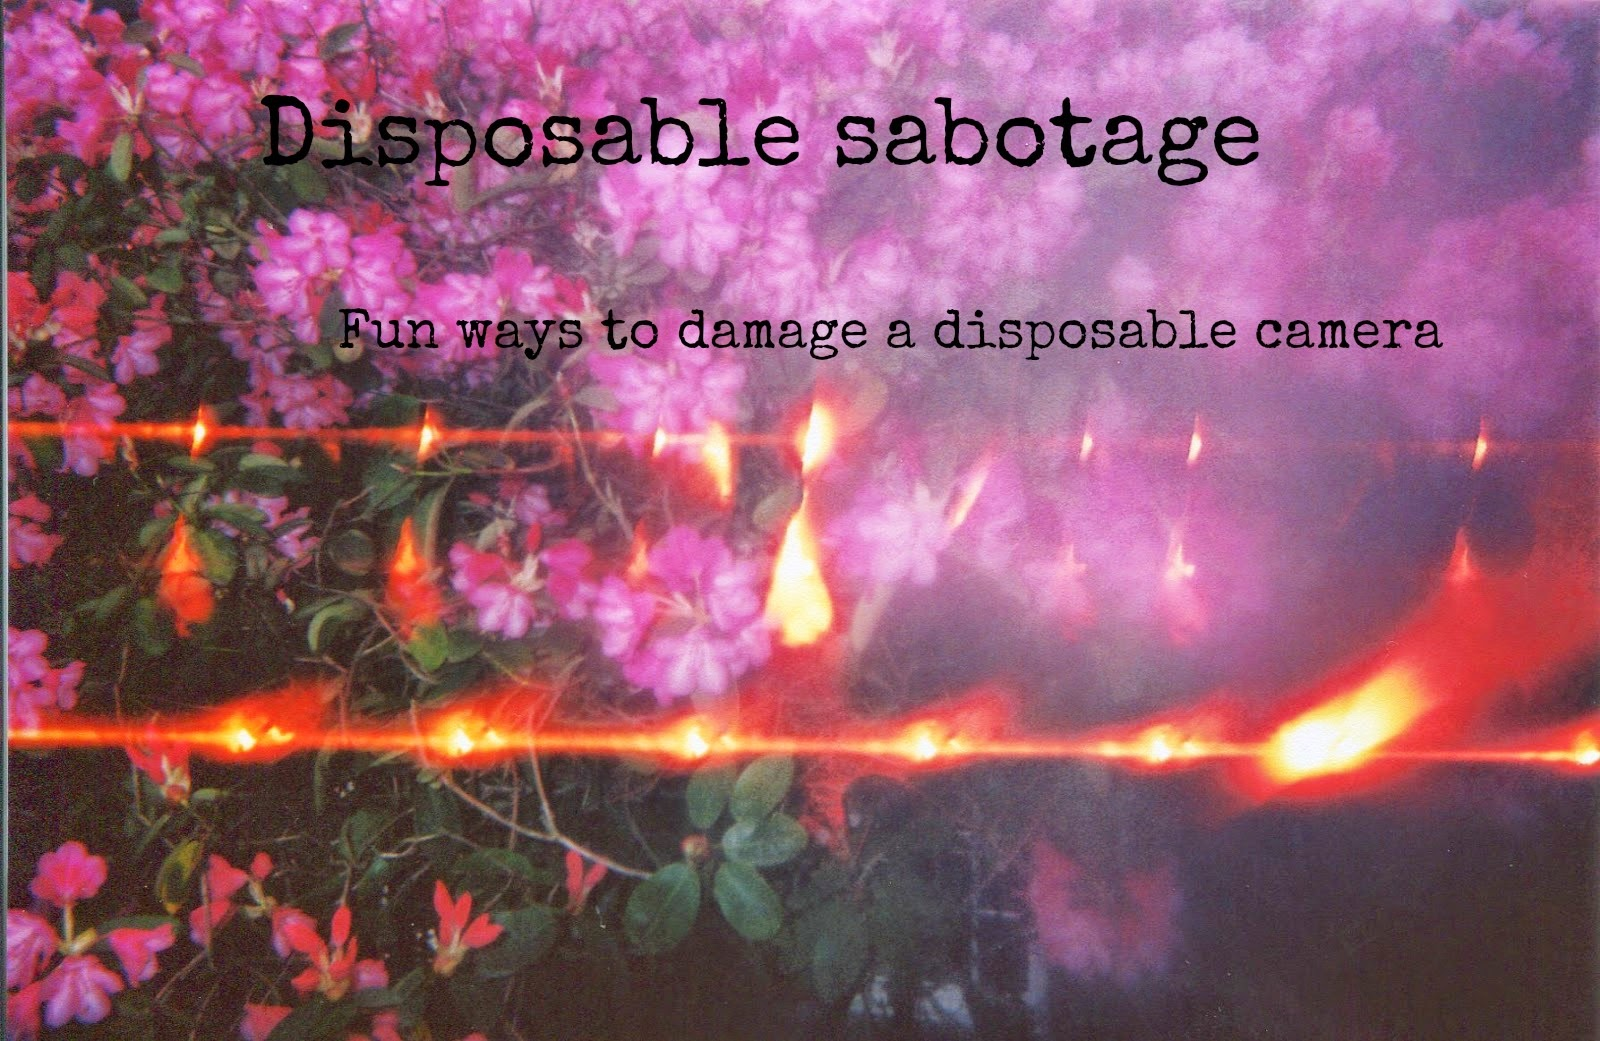 http://talesonfilm.blogspot.co.uk/2014/05/disposable-sabotage.html